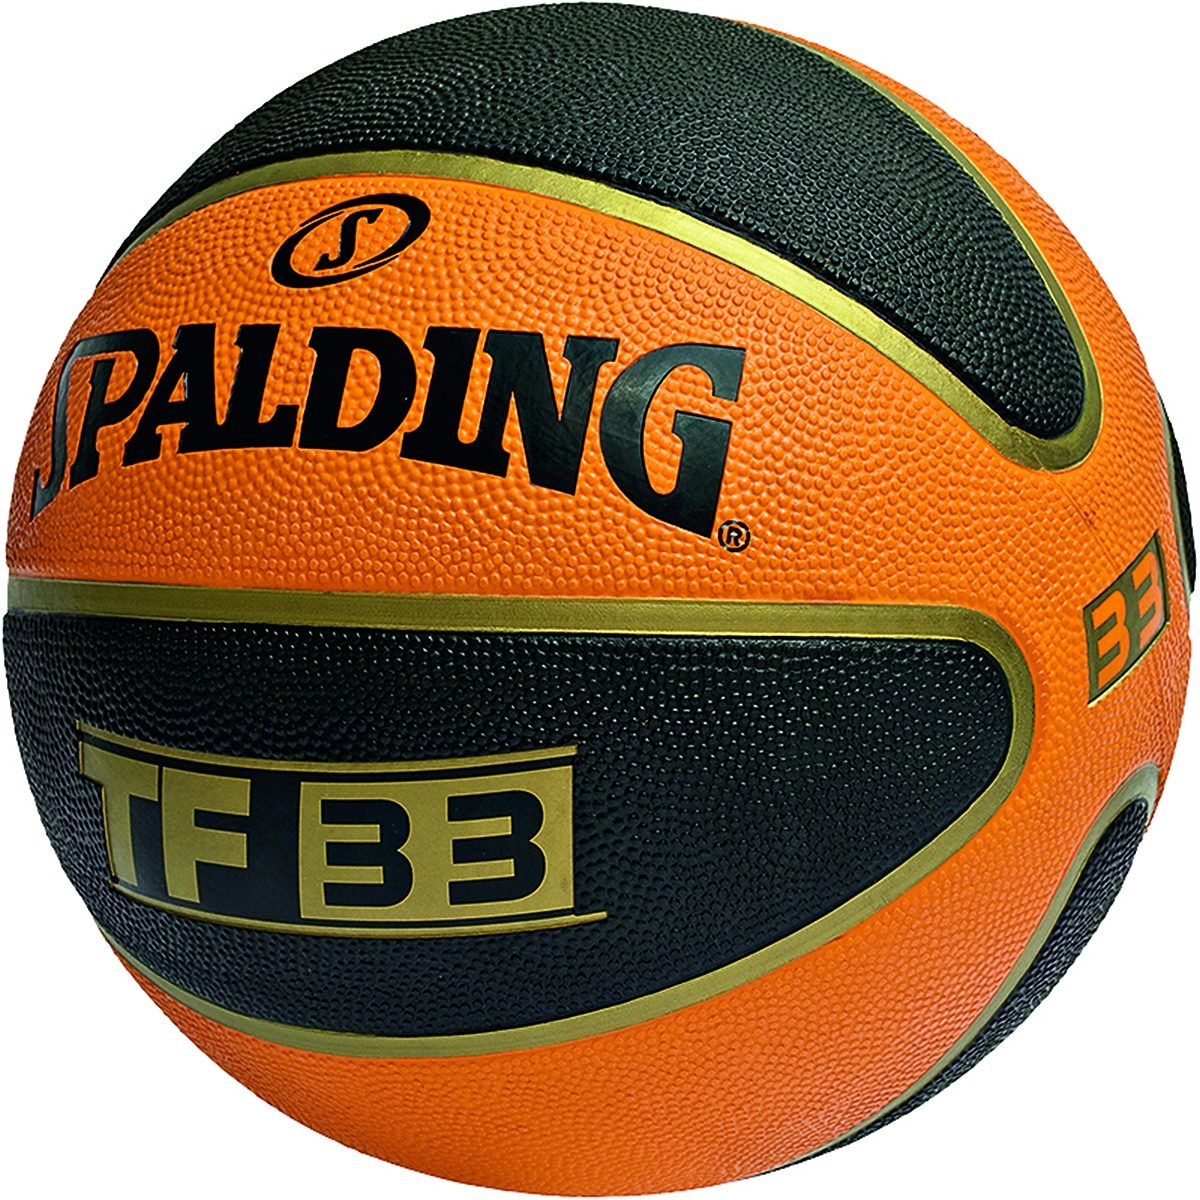 SPALDING TF 33 Outdoor Basketball